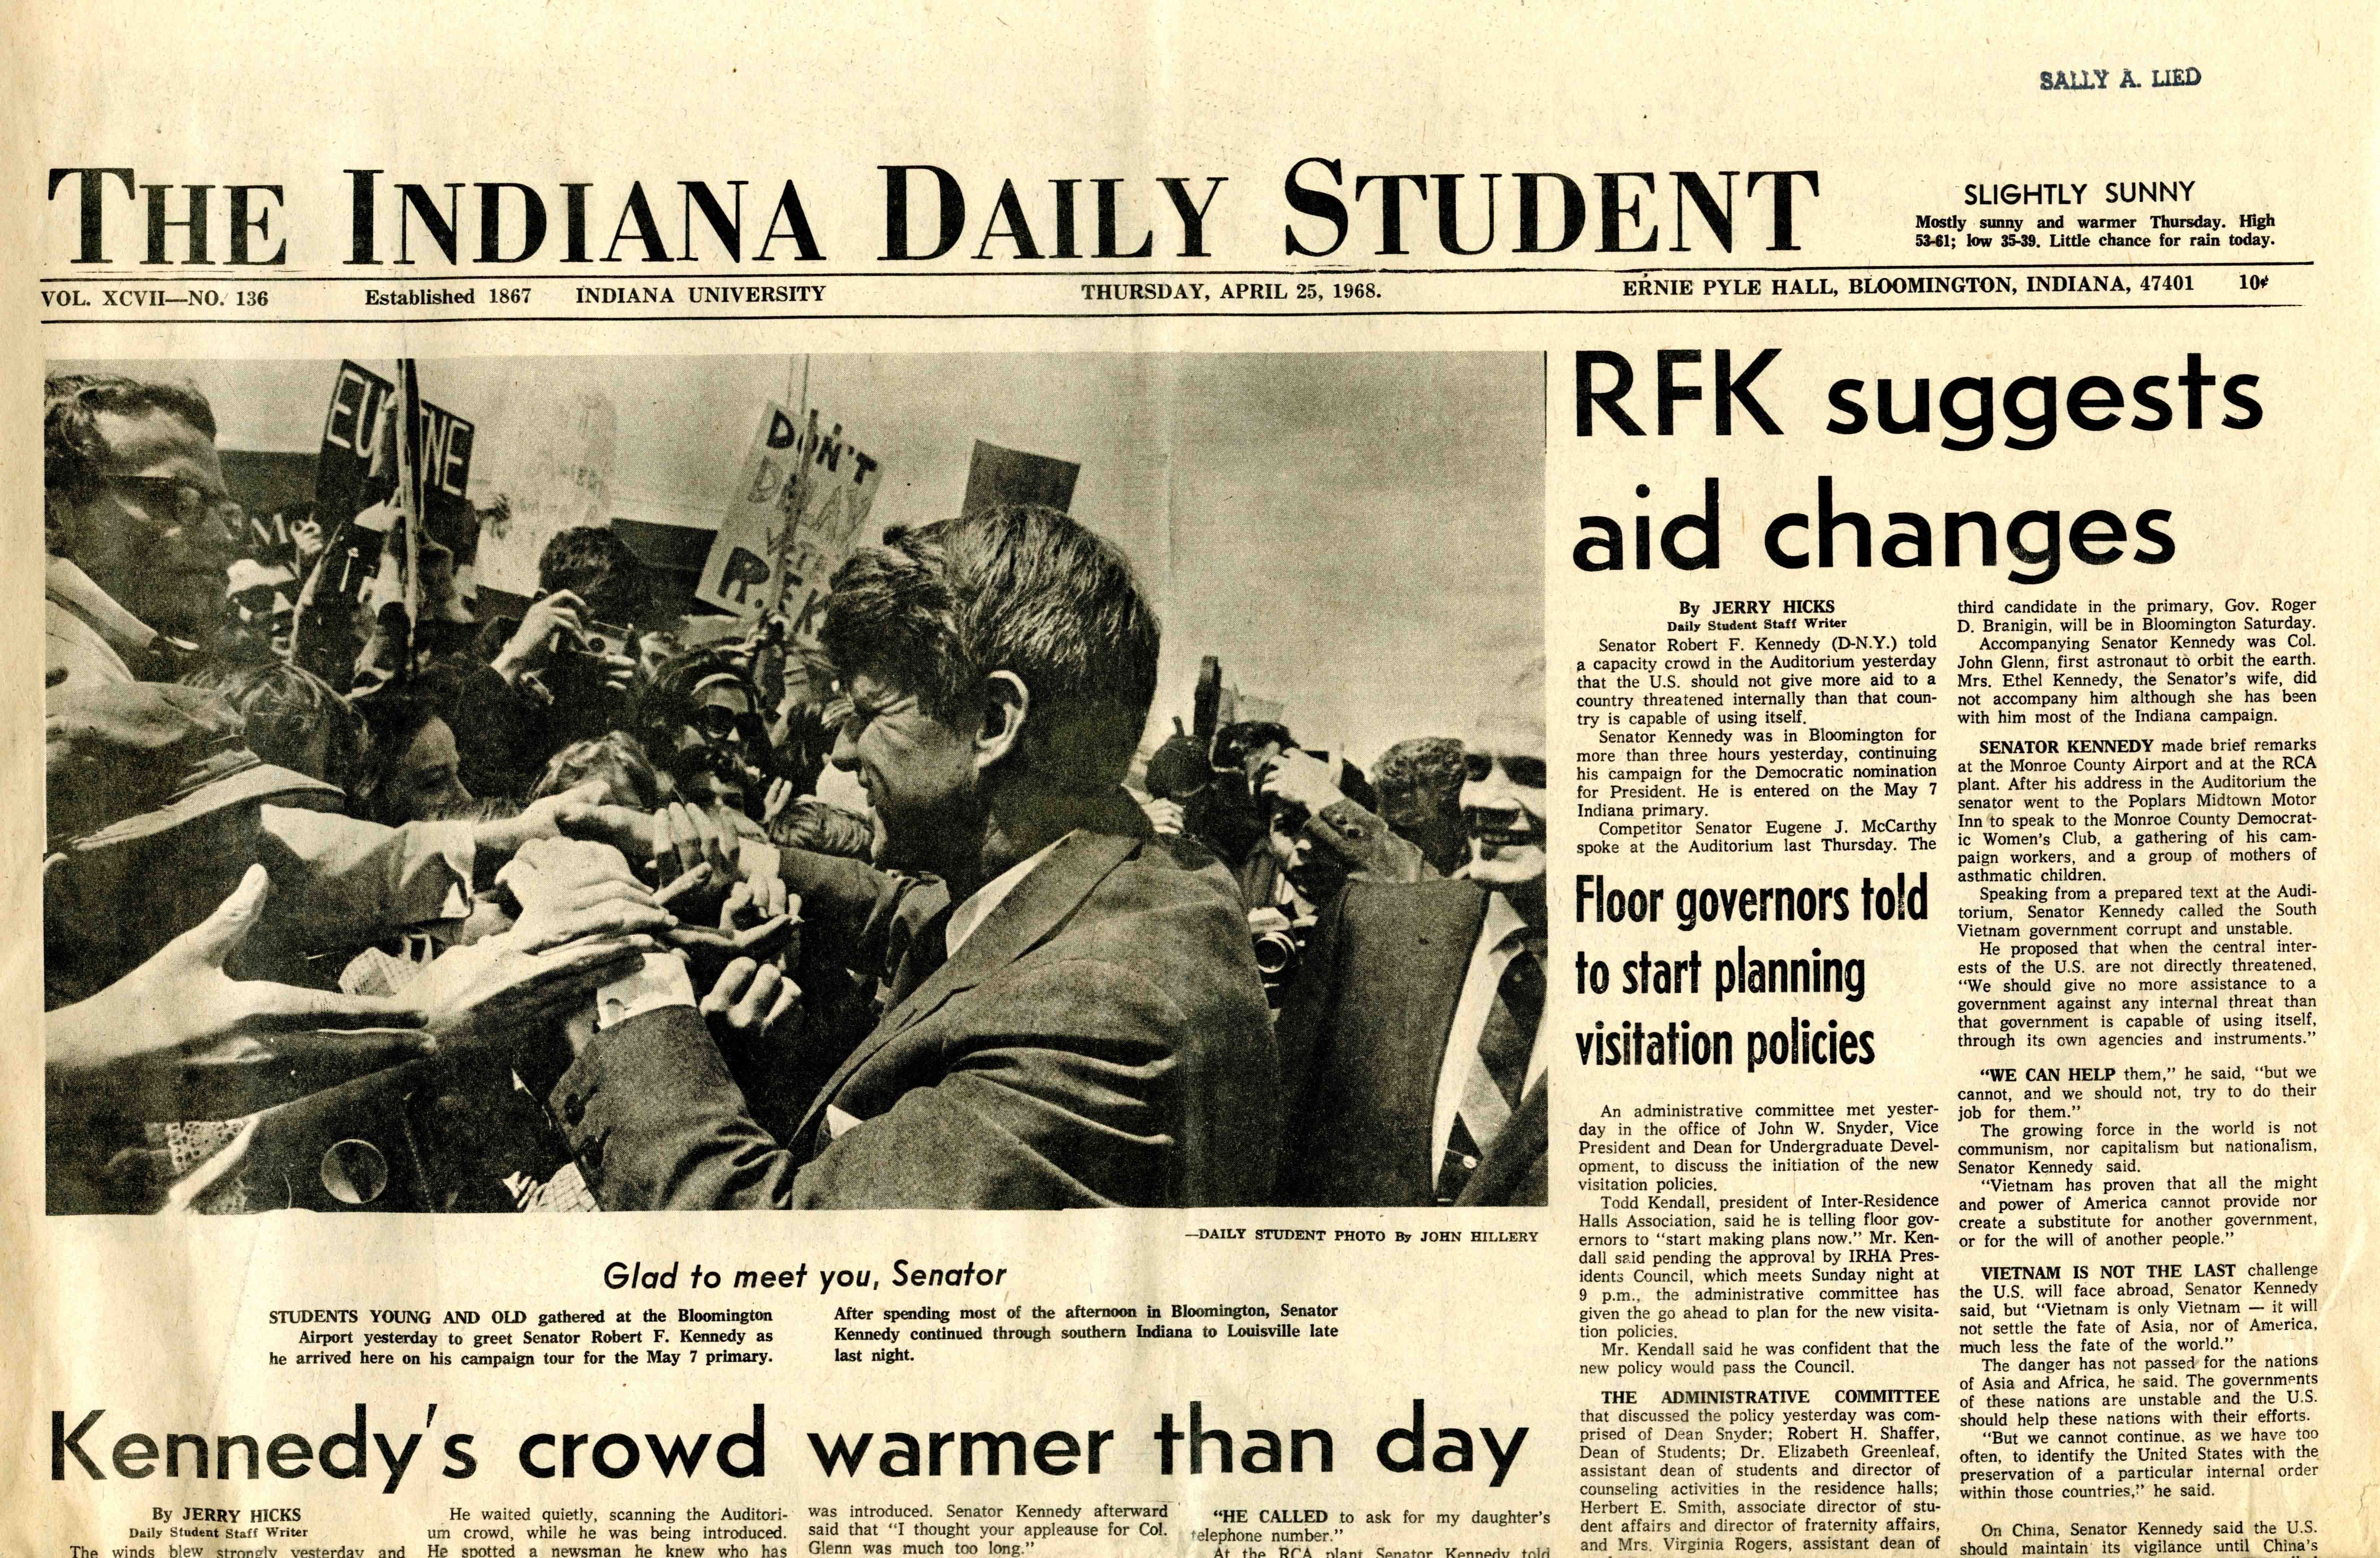 Indiana Daily Student, April 25, 1968